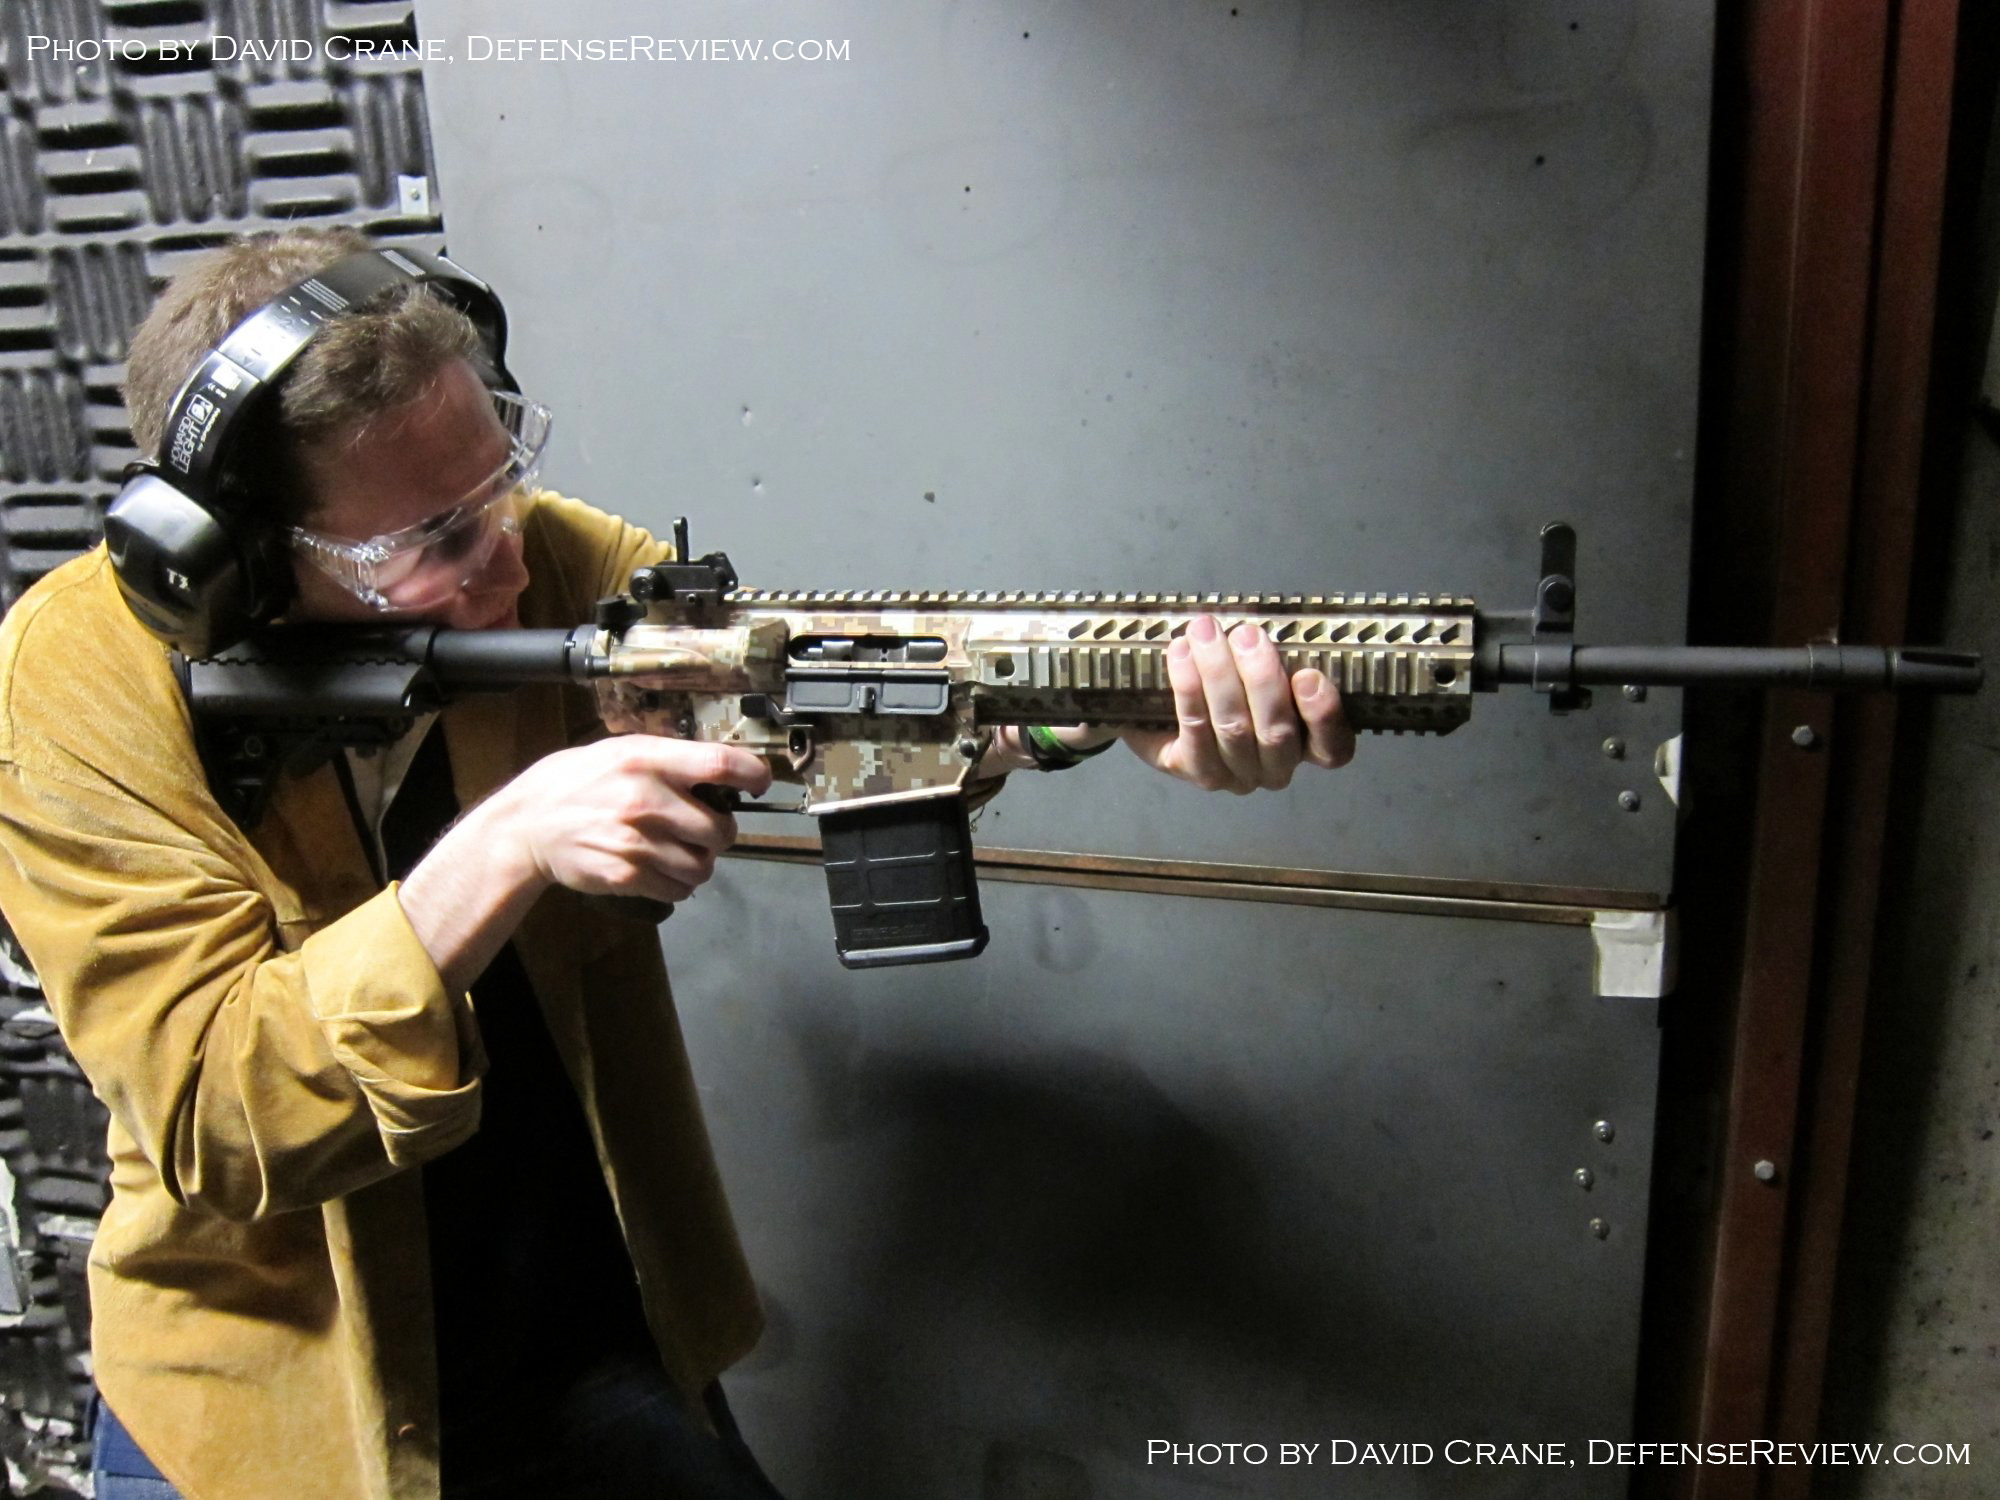 <!--:en-->DR Exclusive First Look!: SCAR Who? Meet the Colt Modular Carbine (CMC) Model CM901 Multi-Caliber 7.62mm NATO Battle Rifle / 5.56mm NATO Assault Rifle for U.S. Military Special Operations Forces (SOF) and General Infantry Forces (GIF). DefenseReview (DR) Reports (Photos and Video!) <!--:-->